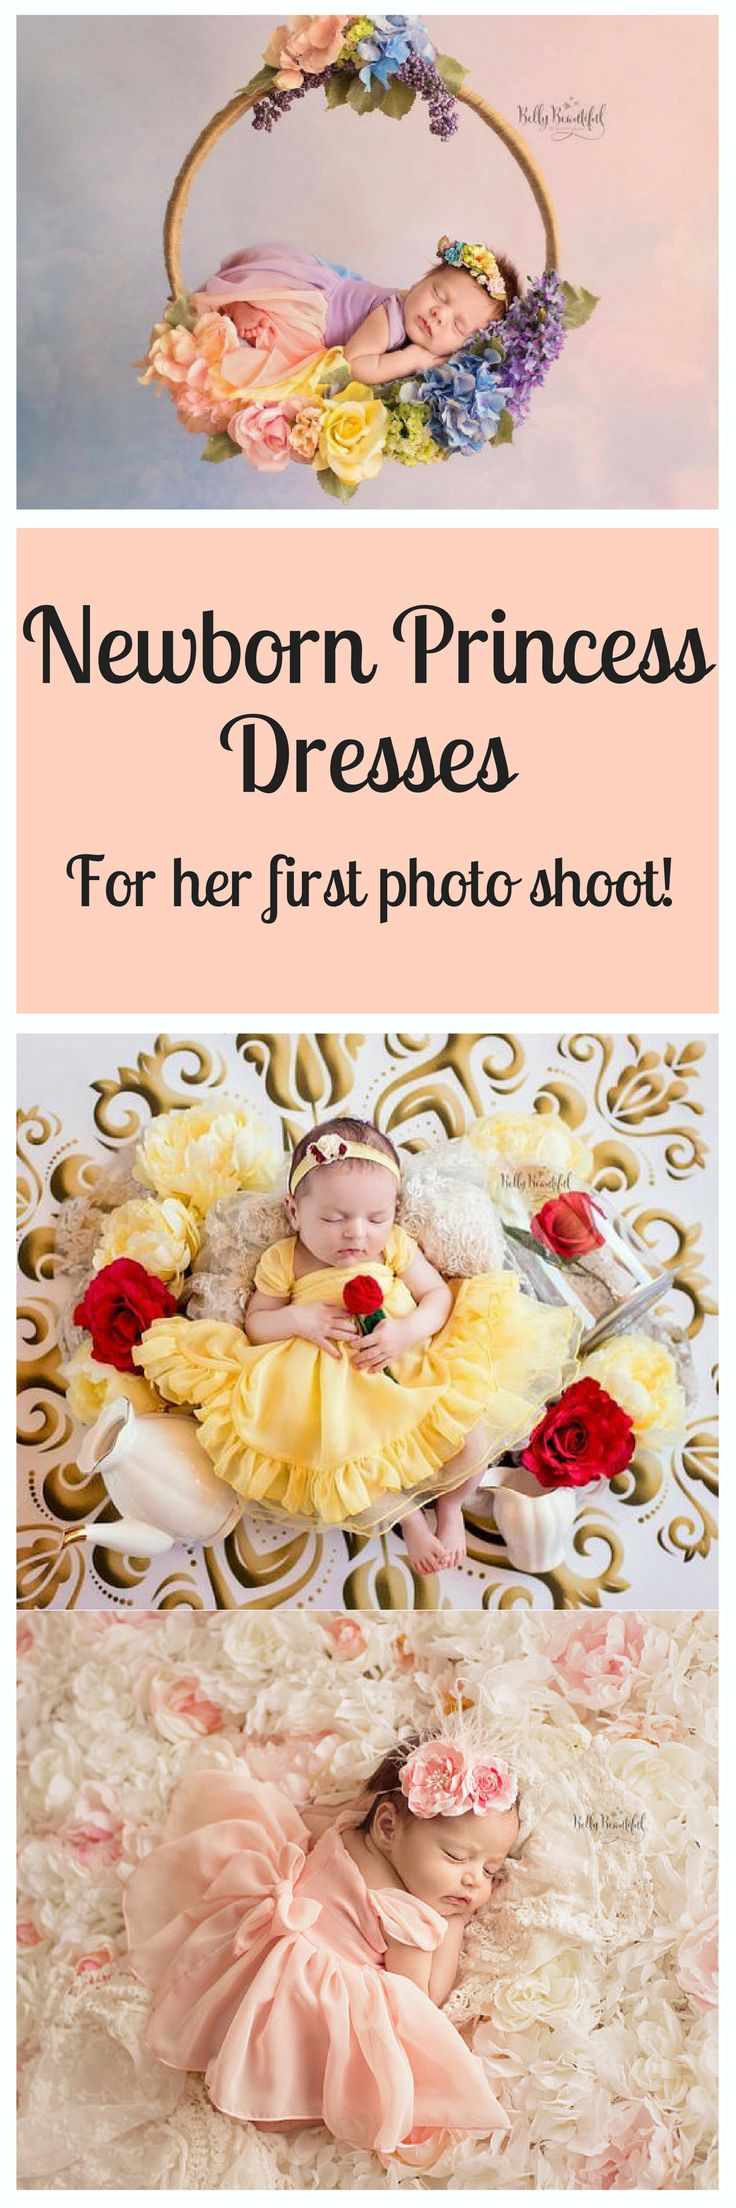 These are so adorable! Newborn princess dresses! Whether you do it yourself or have it professionally done, these make for the perfect photo shoot! #affiliate #princess #newborndresses